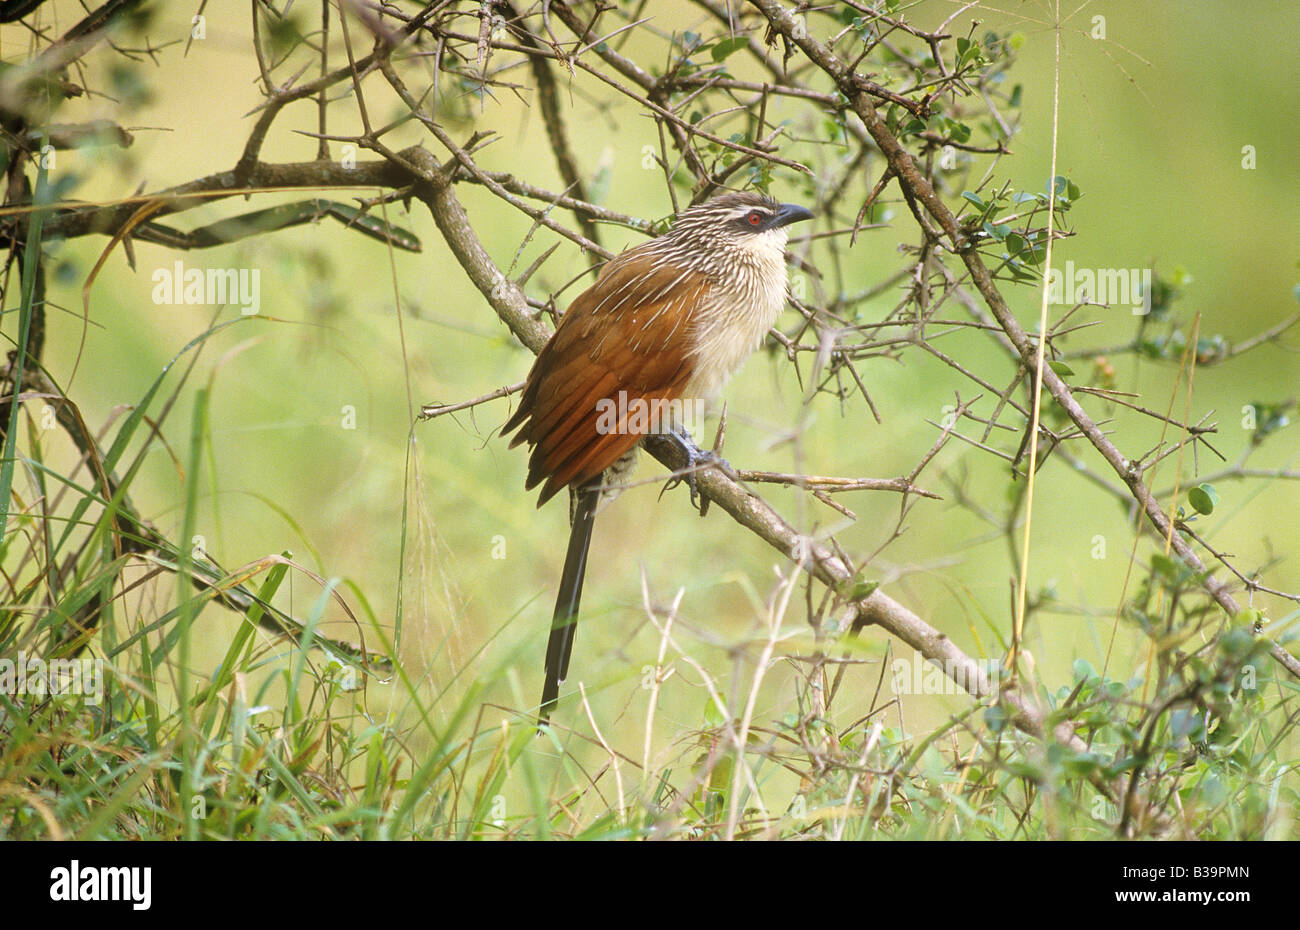 White-browed Coucal - sitting on branch / Centropus superciliosus - Stock Image